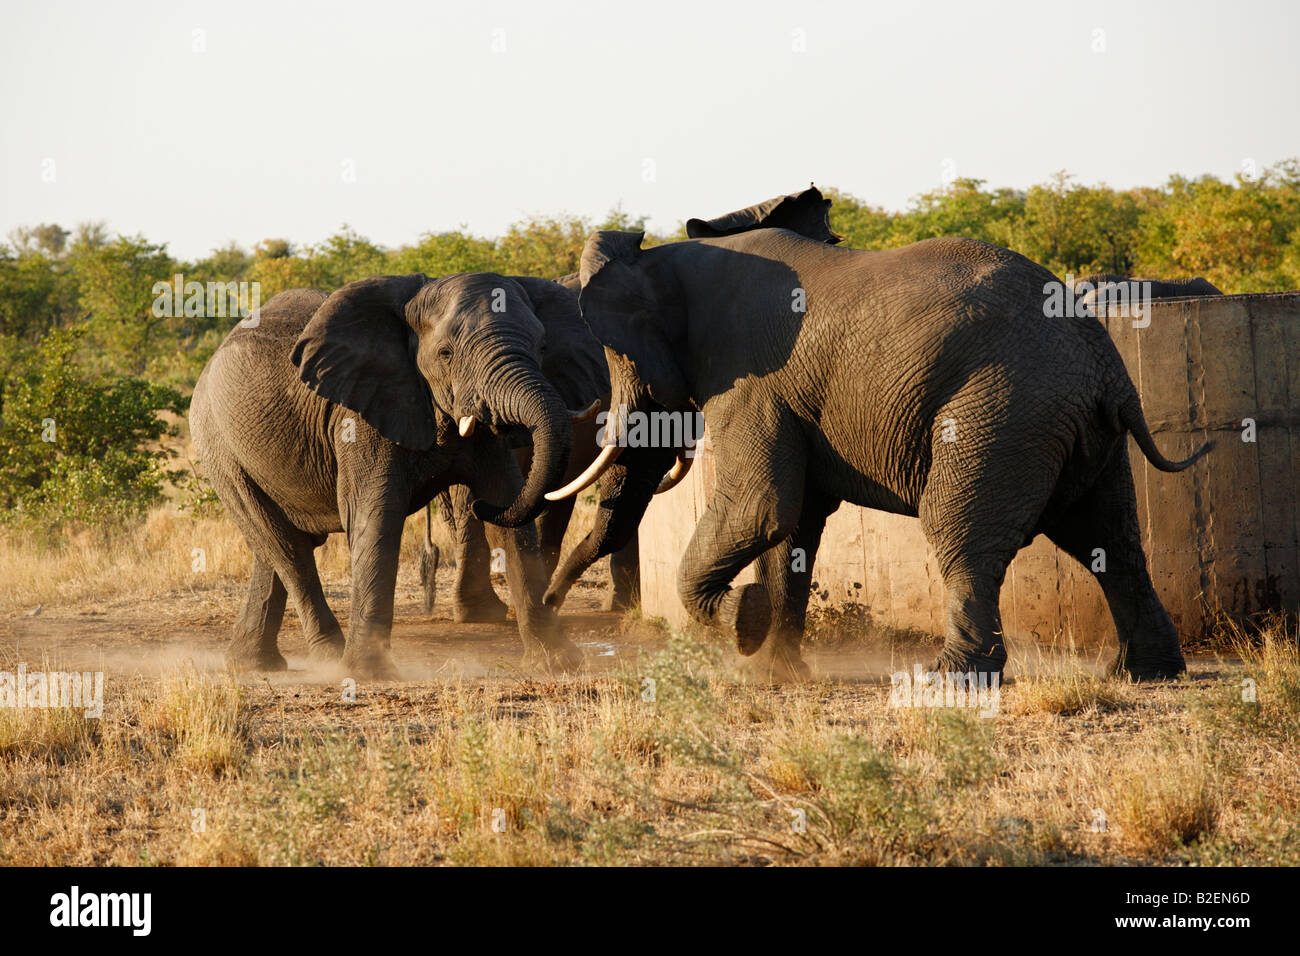 Two bull elephants clash while drinking water at a reservoir - Stock Image